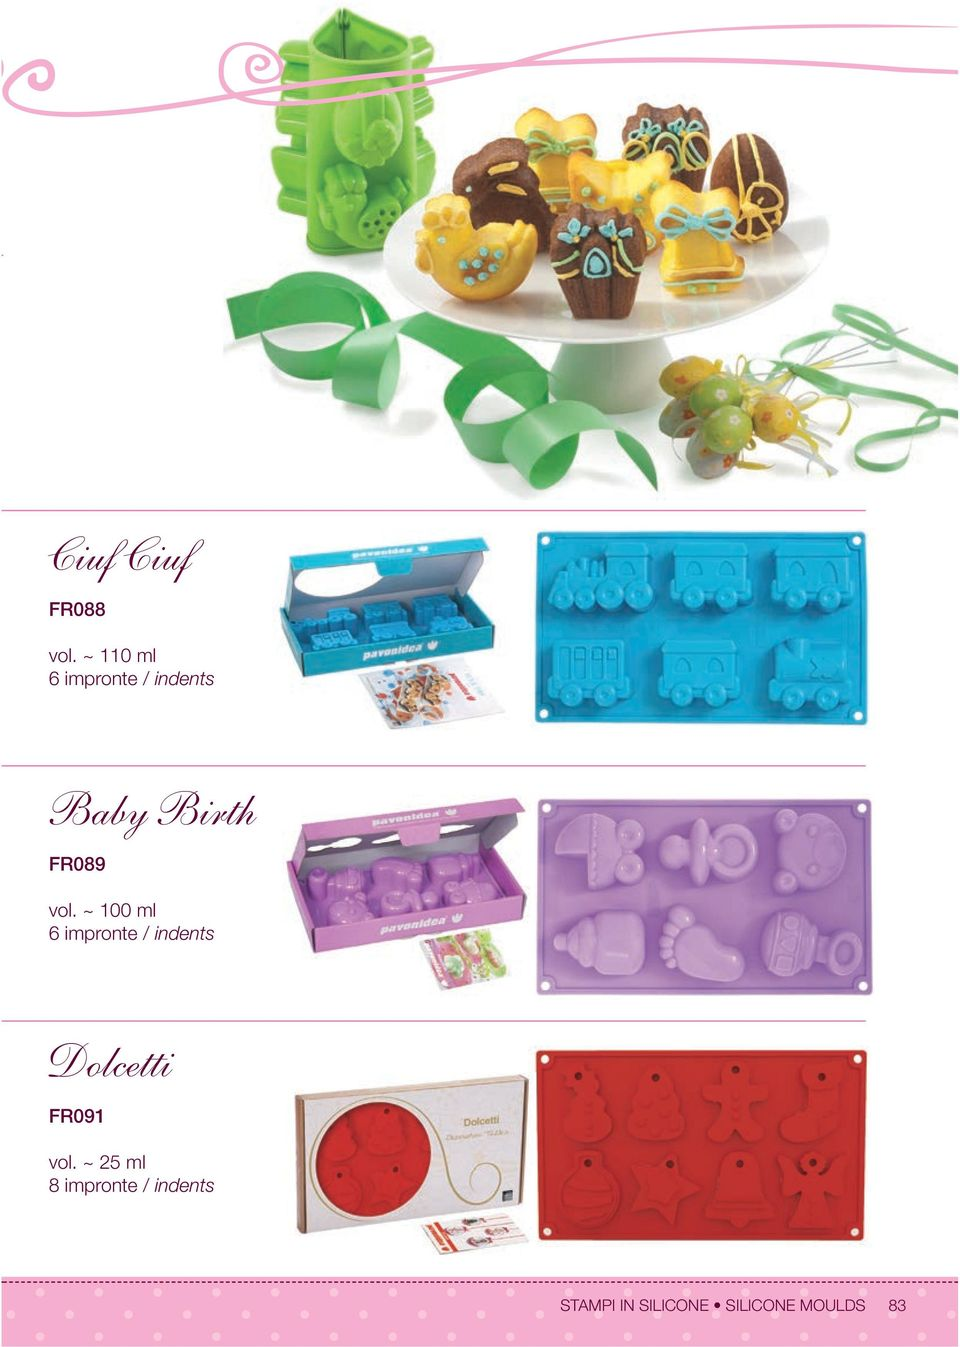 Stampi In Silicone Silicone Moulds PDF Free Download